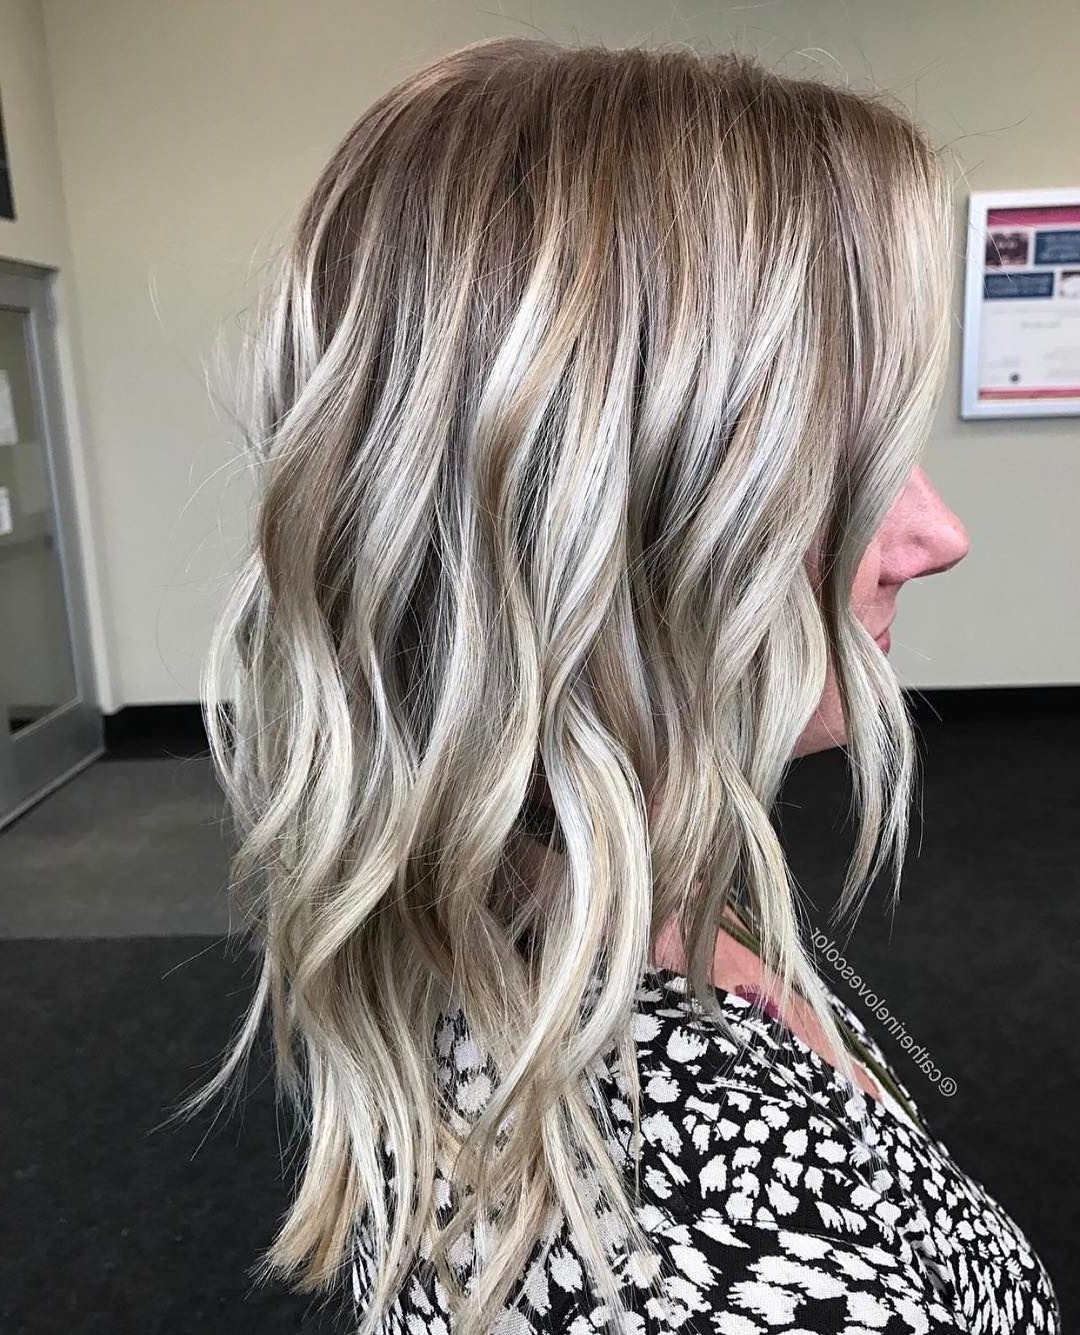 20 Adorable Ash Blonde Hairstyles To Try: Hair Color Ideas 2019 Regarding Chic Chocolate Layers Hairstyles (View 18 of 20)